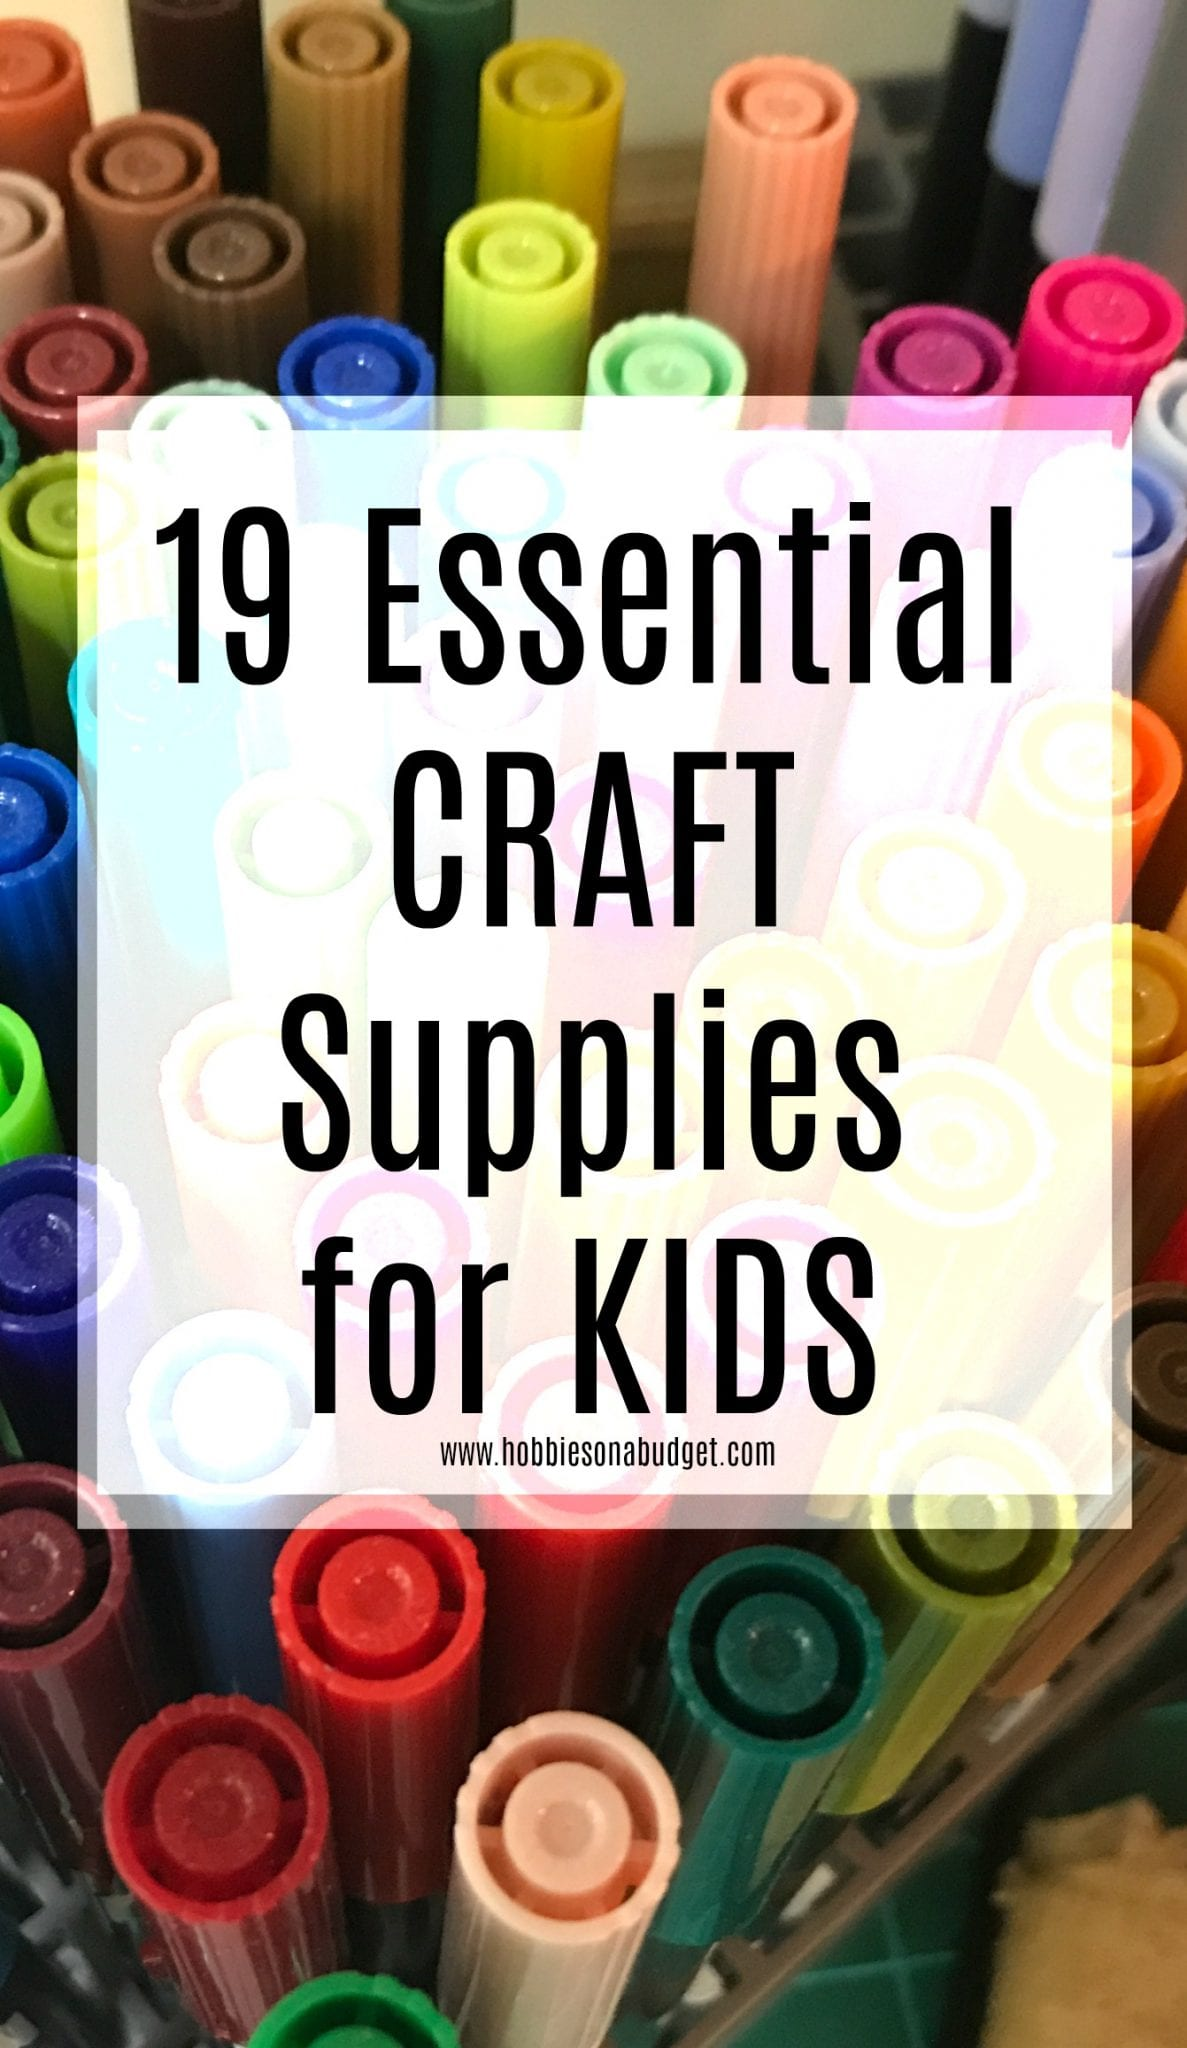 19 Essential Craft Supplies for Kids